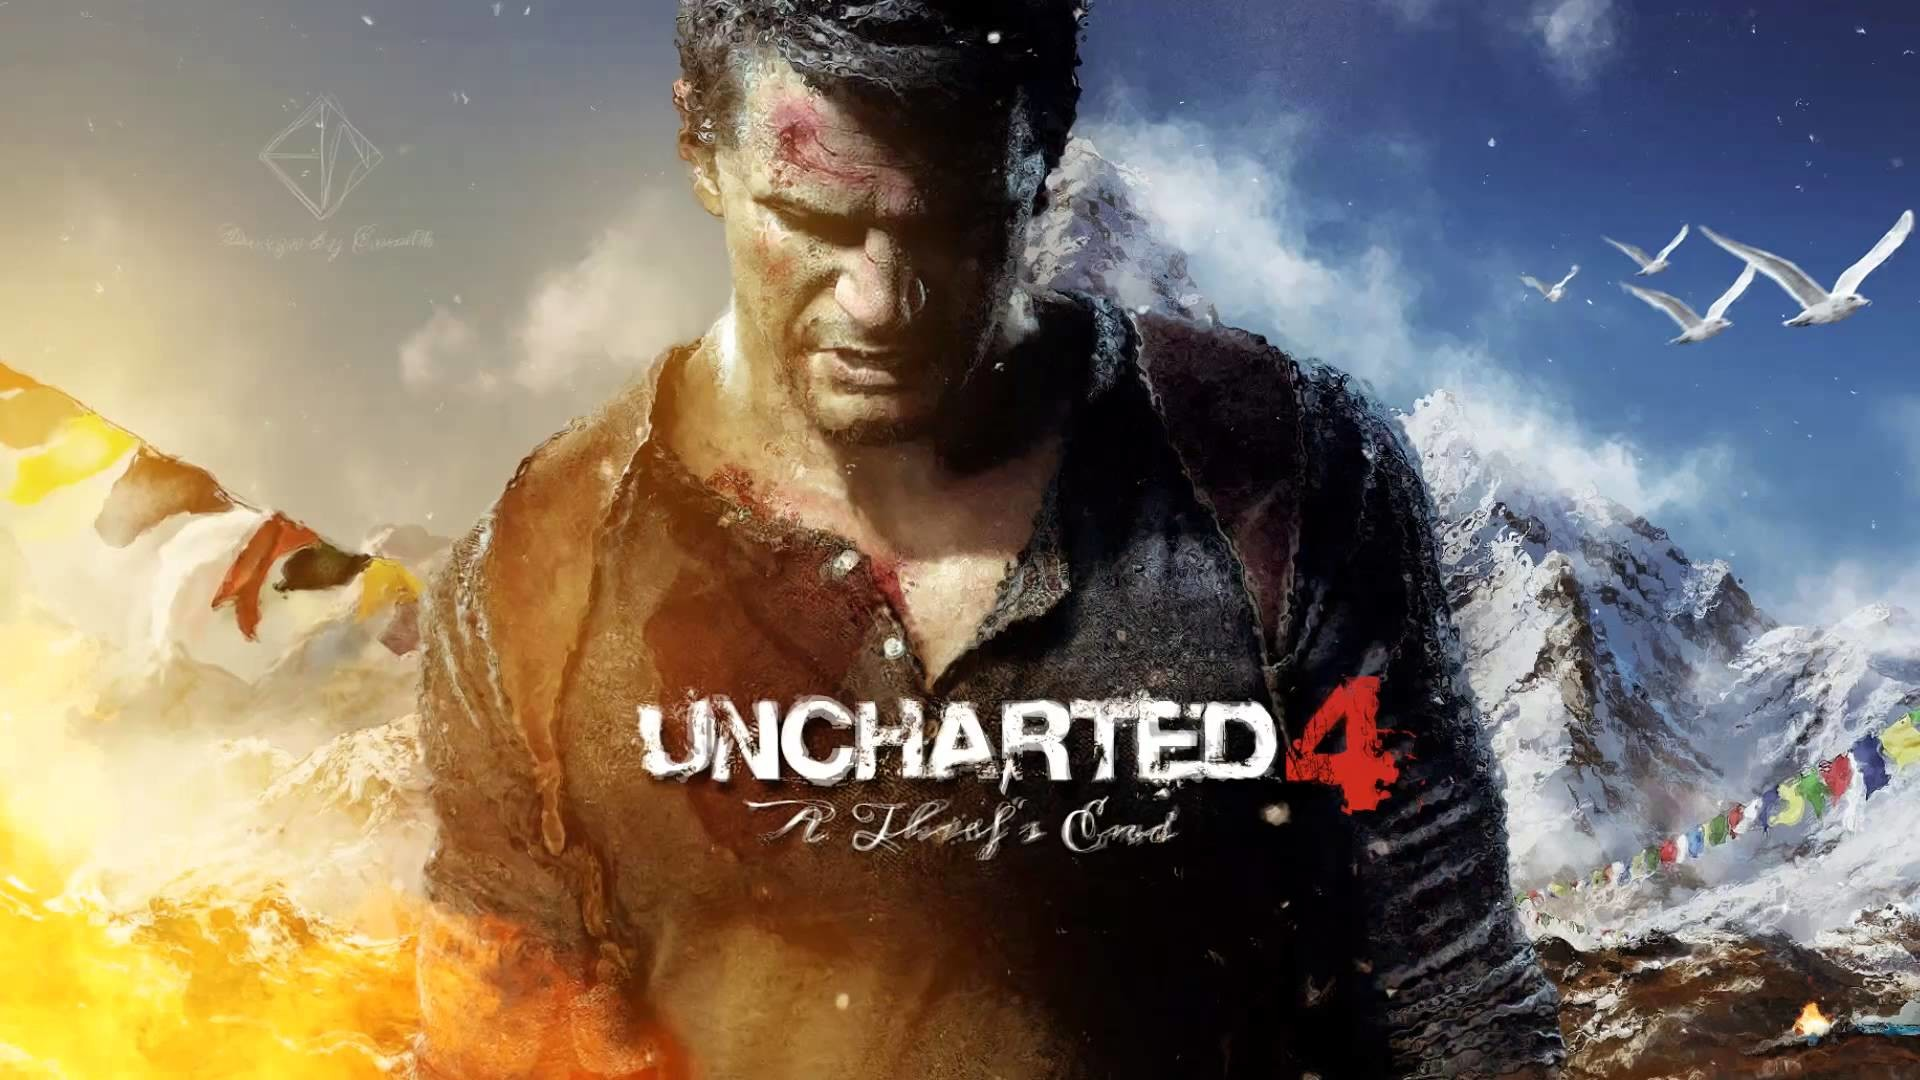 1920x1080 Uncharted 4 Wallpaper [Free Download]